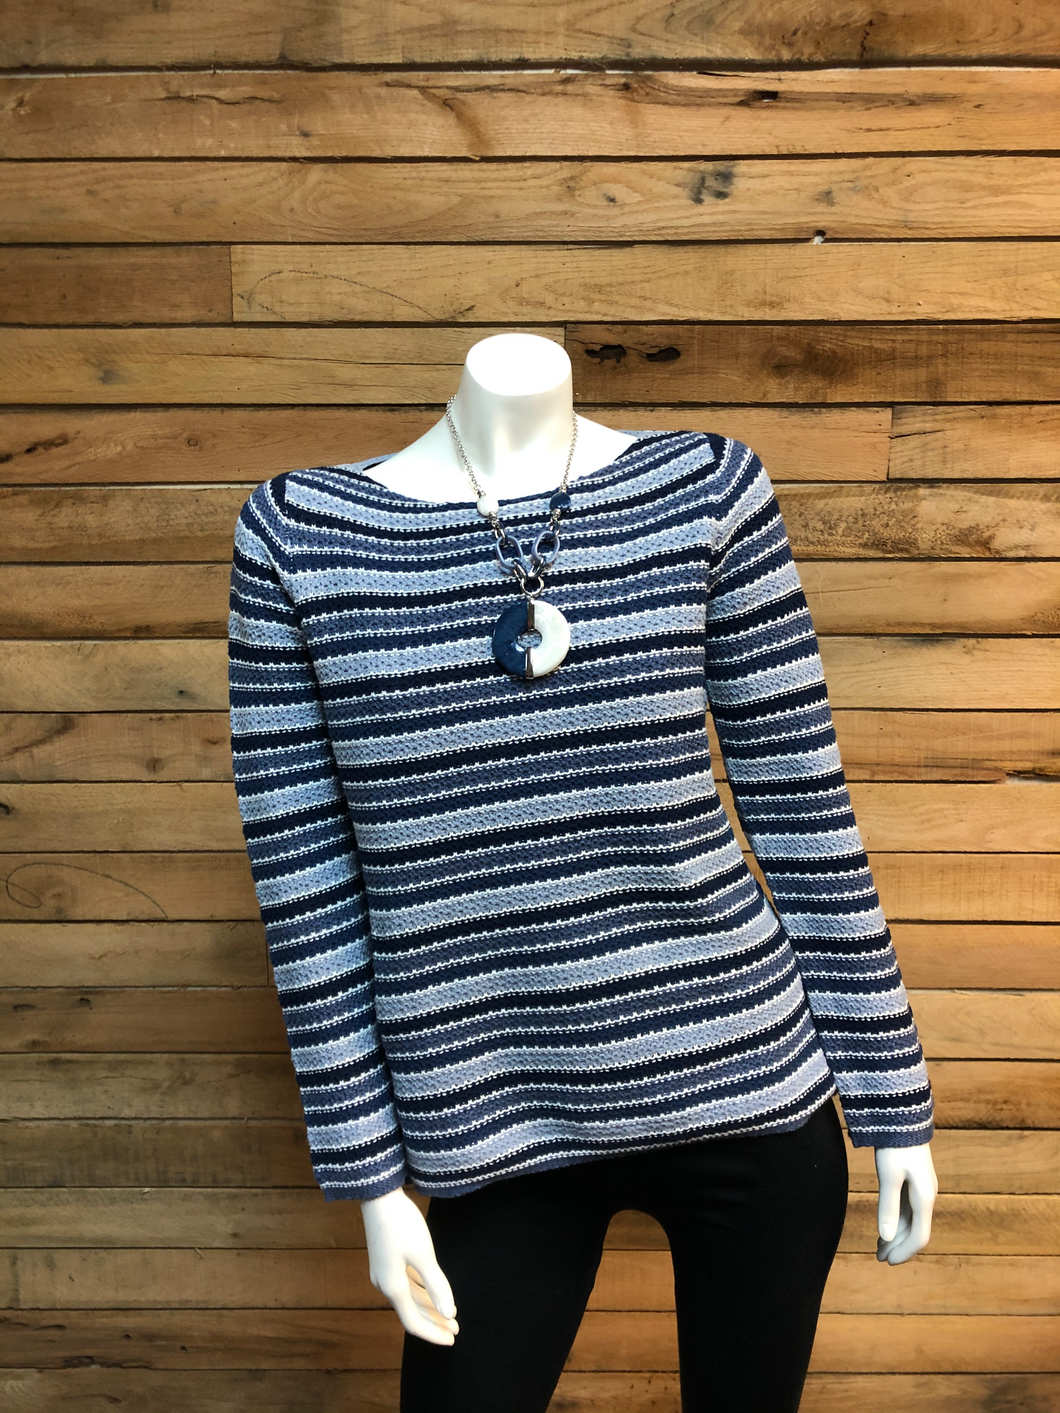 Tri-Colored Horizontal Striped Knit Sweater